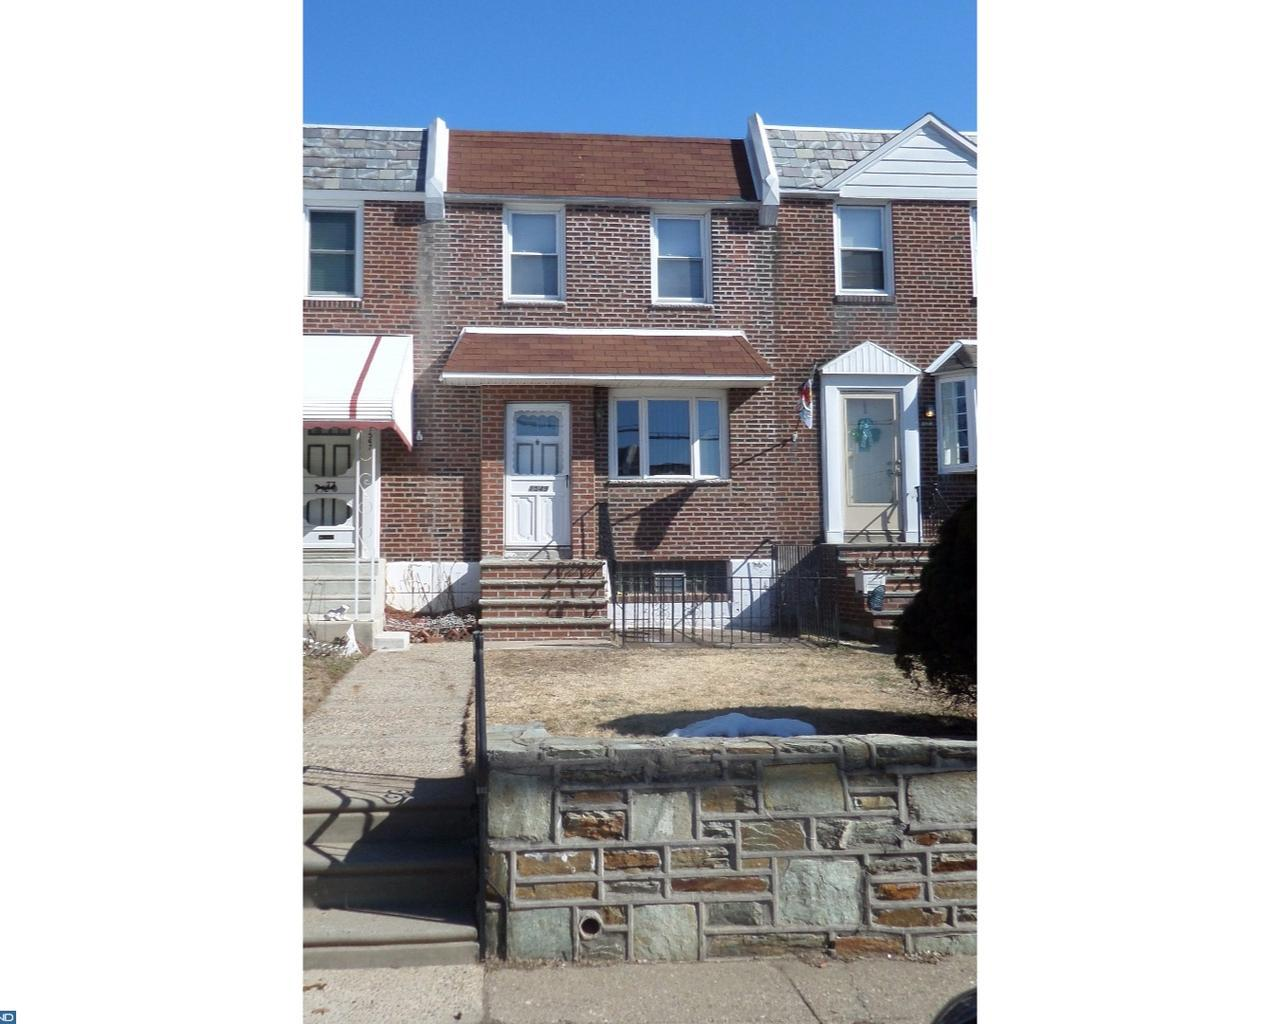 Property for sale at 1549 E COMLY ST, Philadelphia,  PA 19149